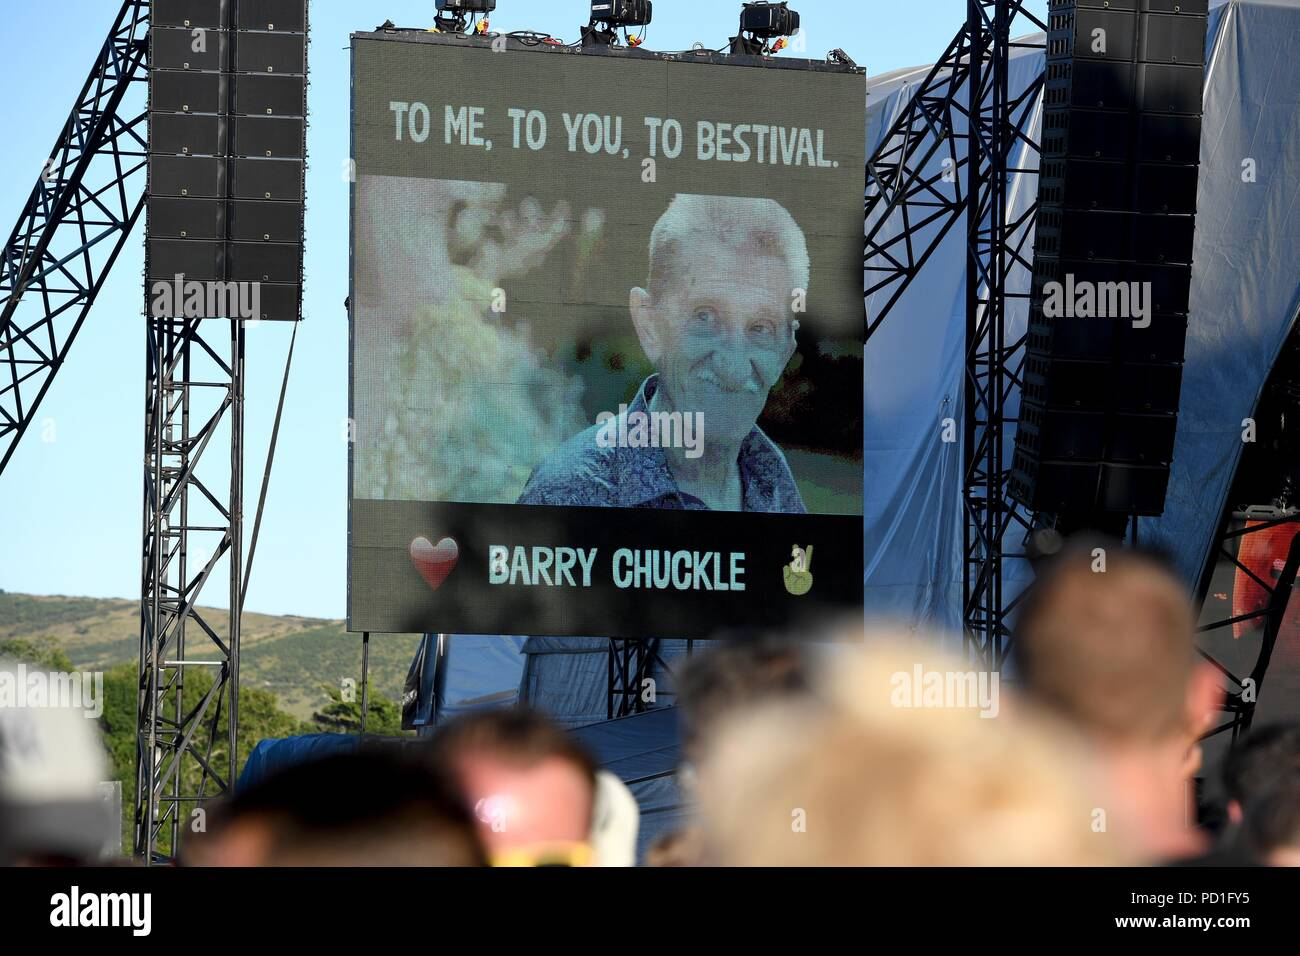 Tribute to Barry Chuckle at Bestival, Dorset, UK Credit: Finnbarr Webster/Alamy Live News - Stock Image